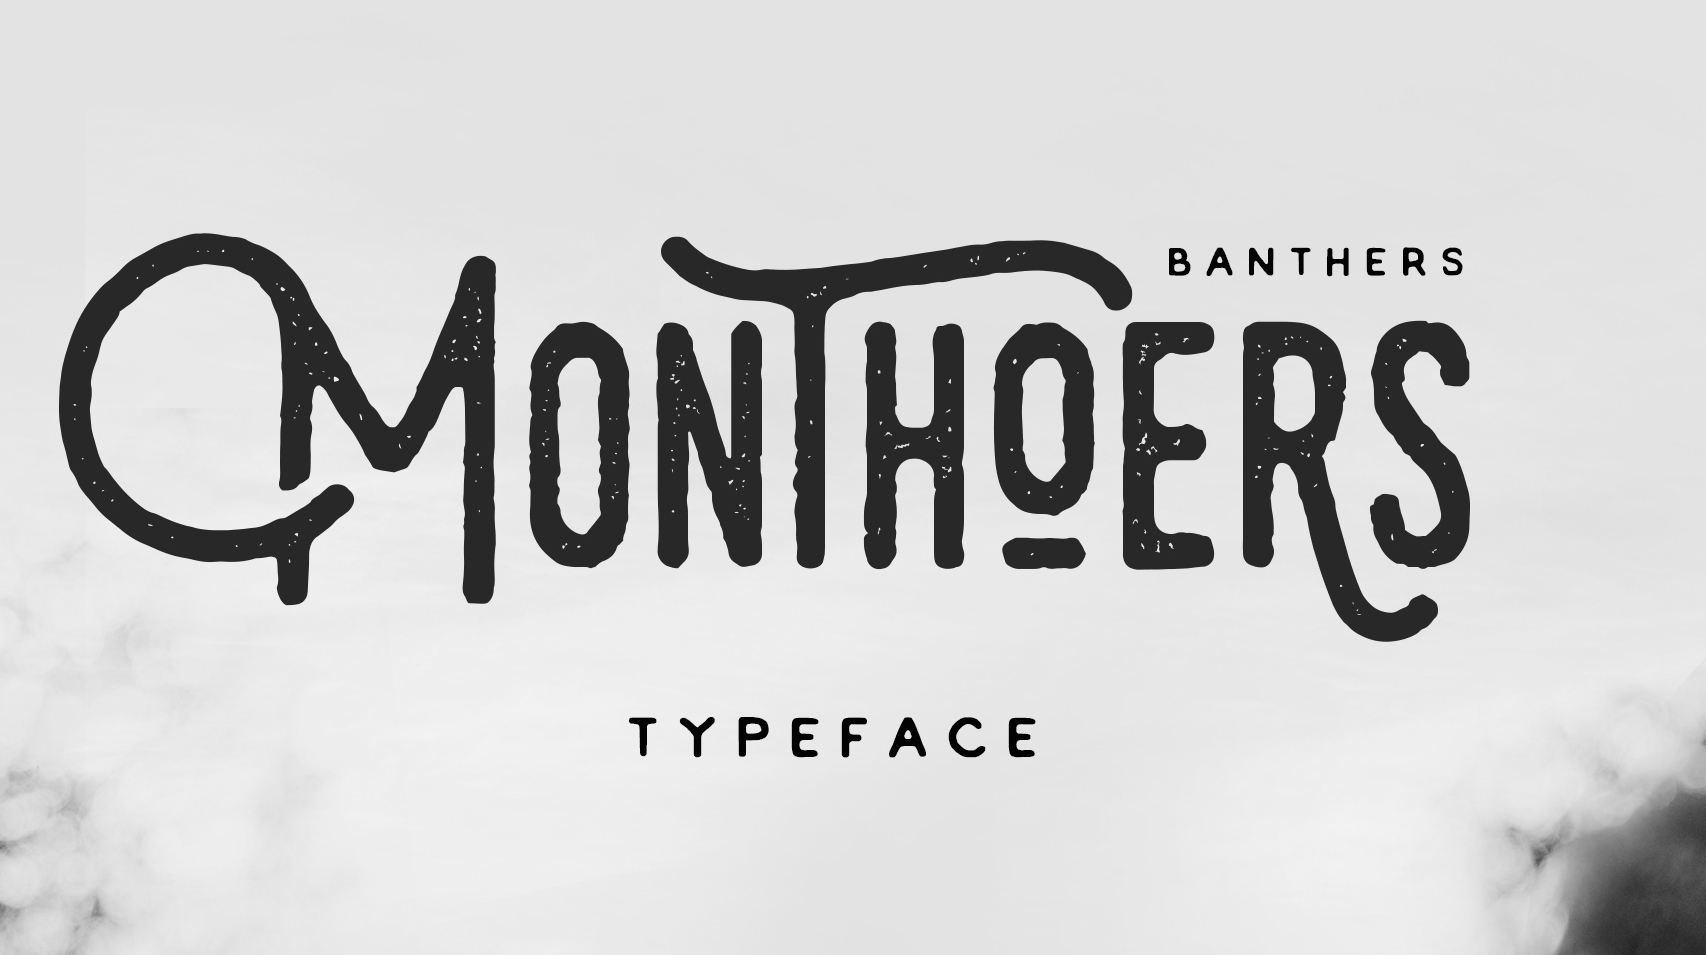 10 Best Handwriting Fonts for Graphic Designers-Swissblnk Monthoers